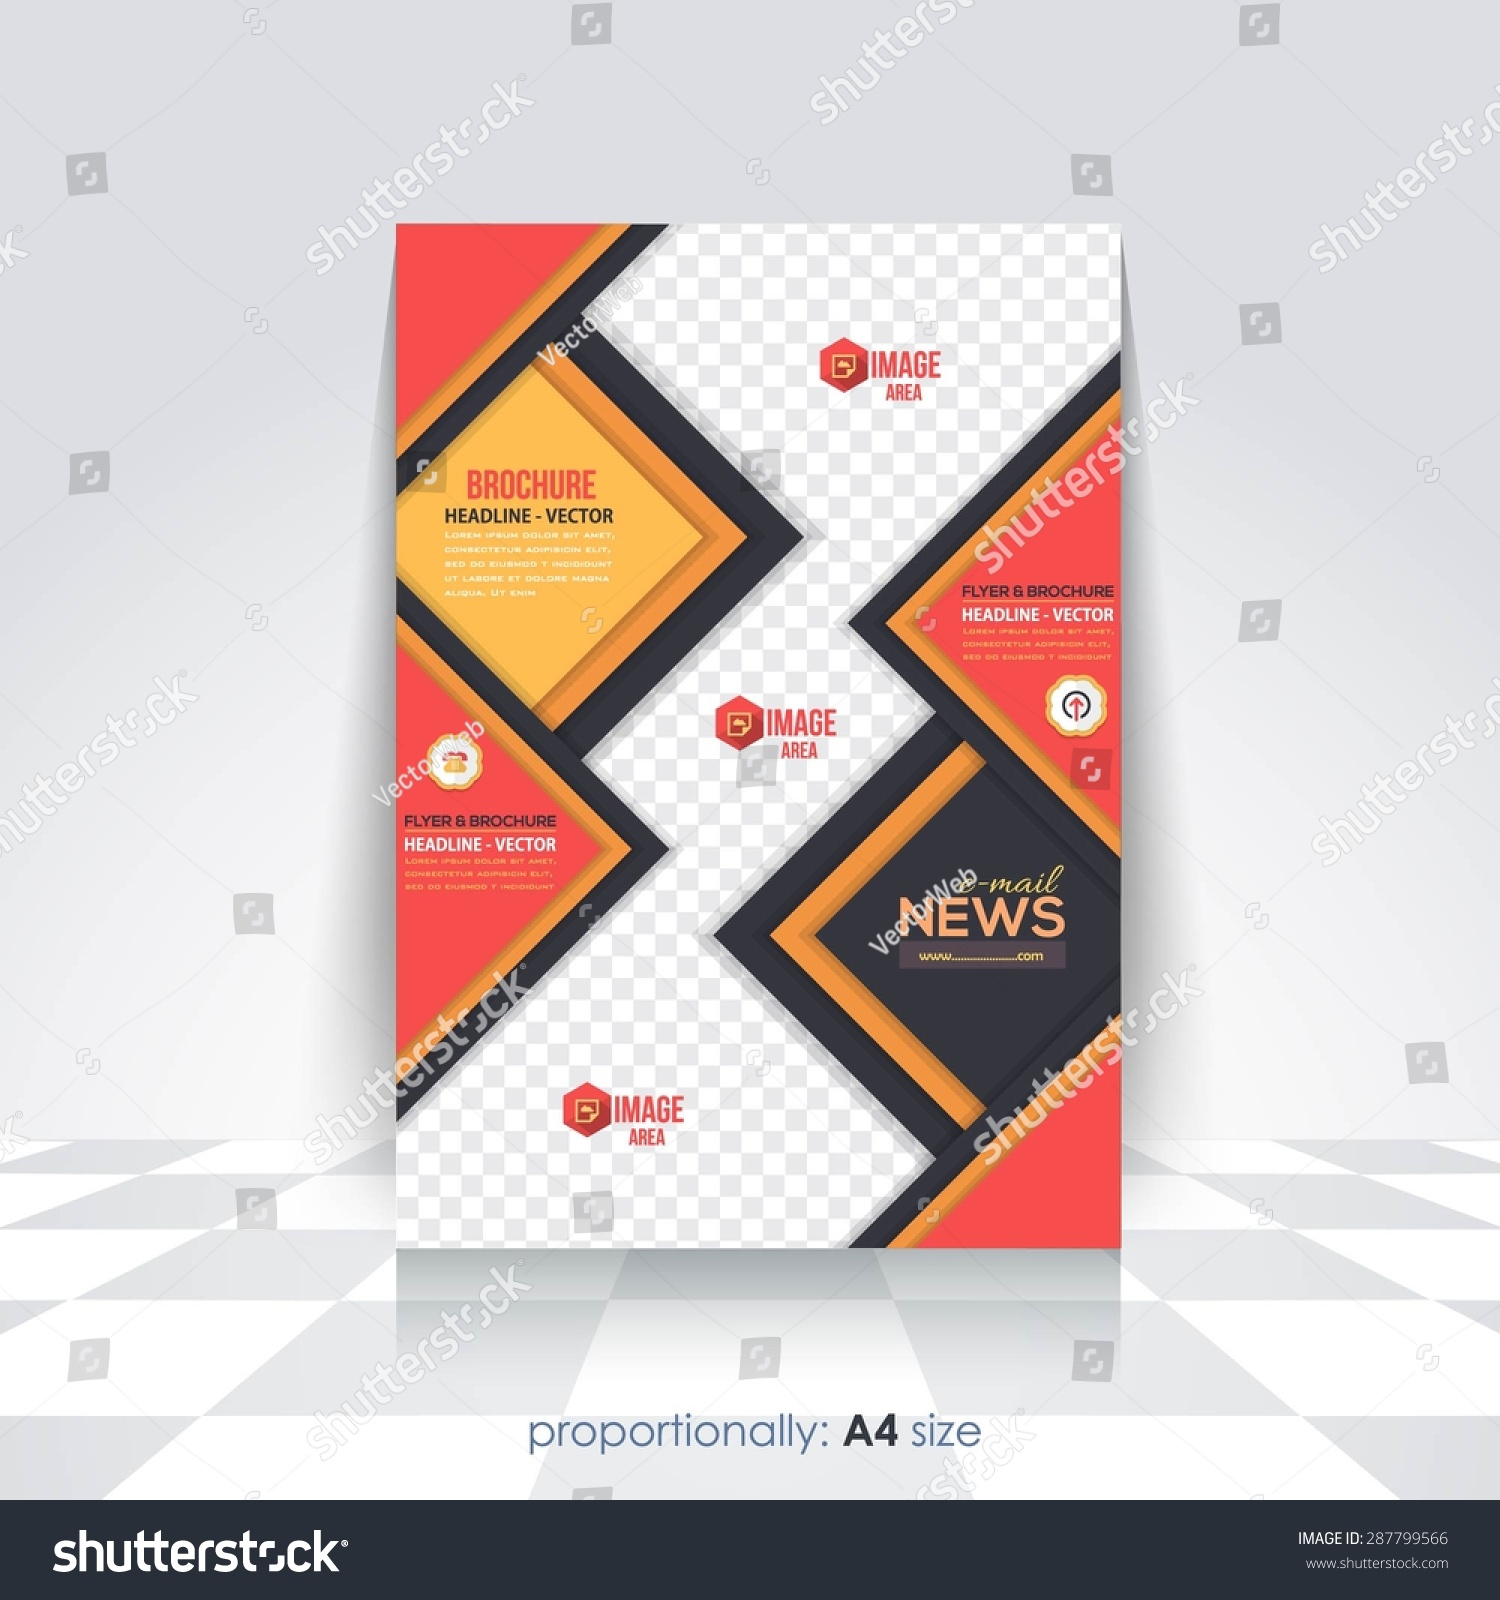 Cute 10 Best Resume Designs Huge 100 Free Resume Builder And Download Shaped 100 Template 18th Birthday Invitations Templates Young 2 Binder Spine Template Red2 Weeks Notice Template Business Style A4 Flyer Brochure Design Stock Vector 287799566 ..